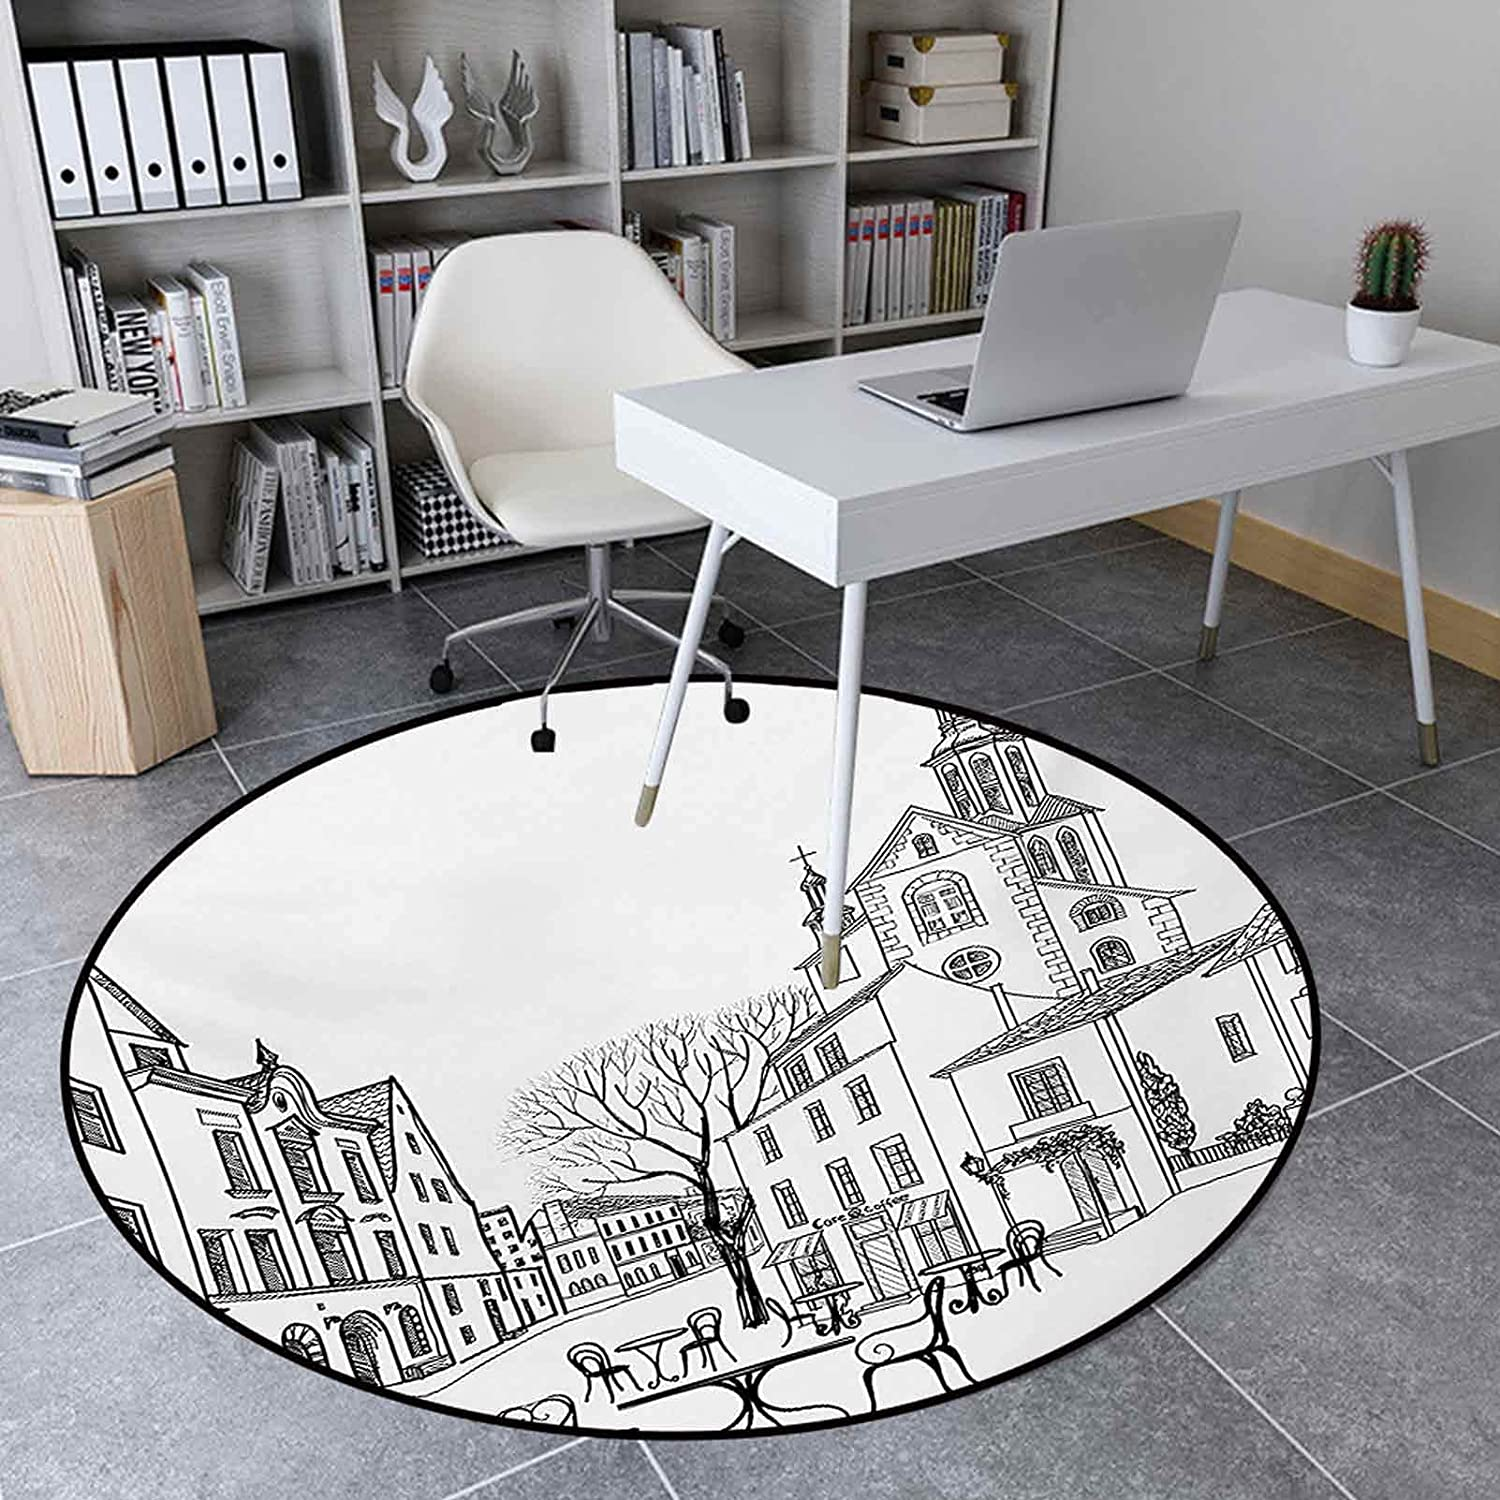 Max 77% OFF Collection Round Rug 4.6 Ft Rugs Room Living for Street in Cafe Manufacturer direct delivery